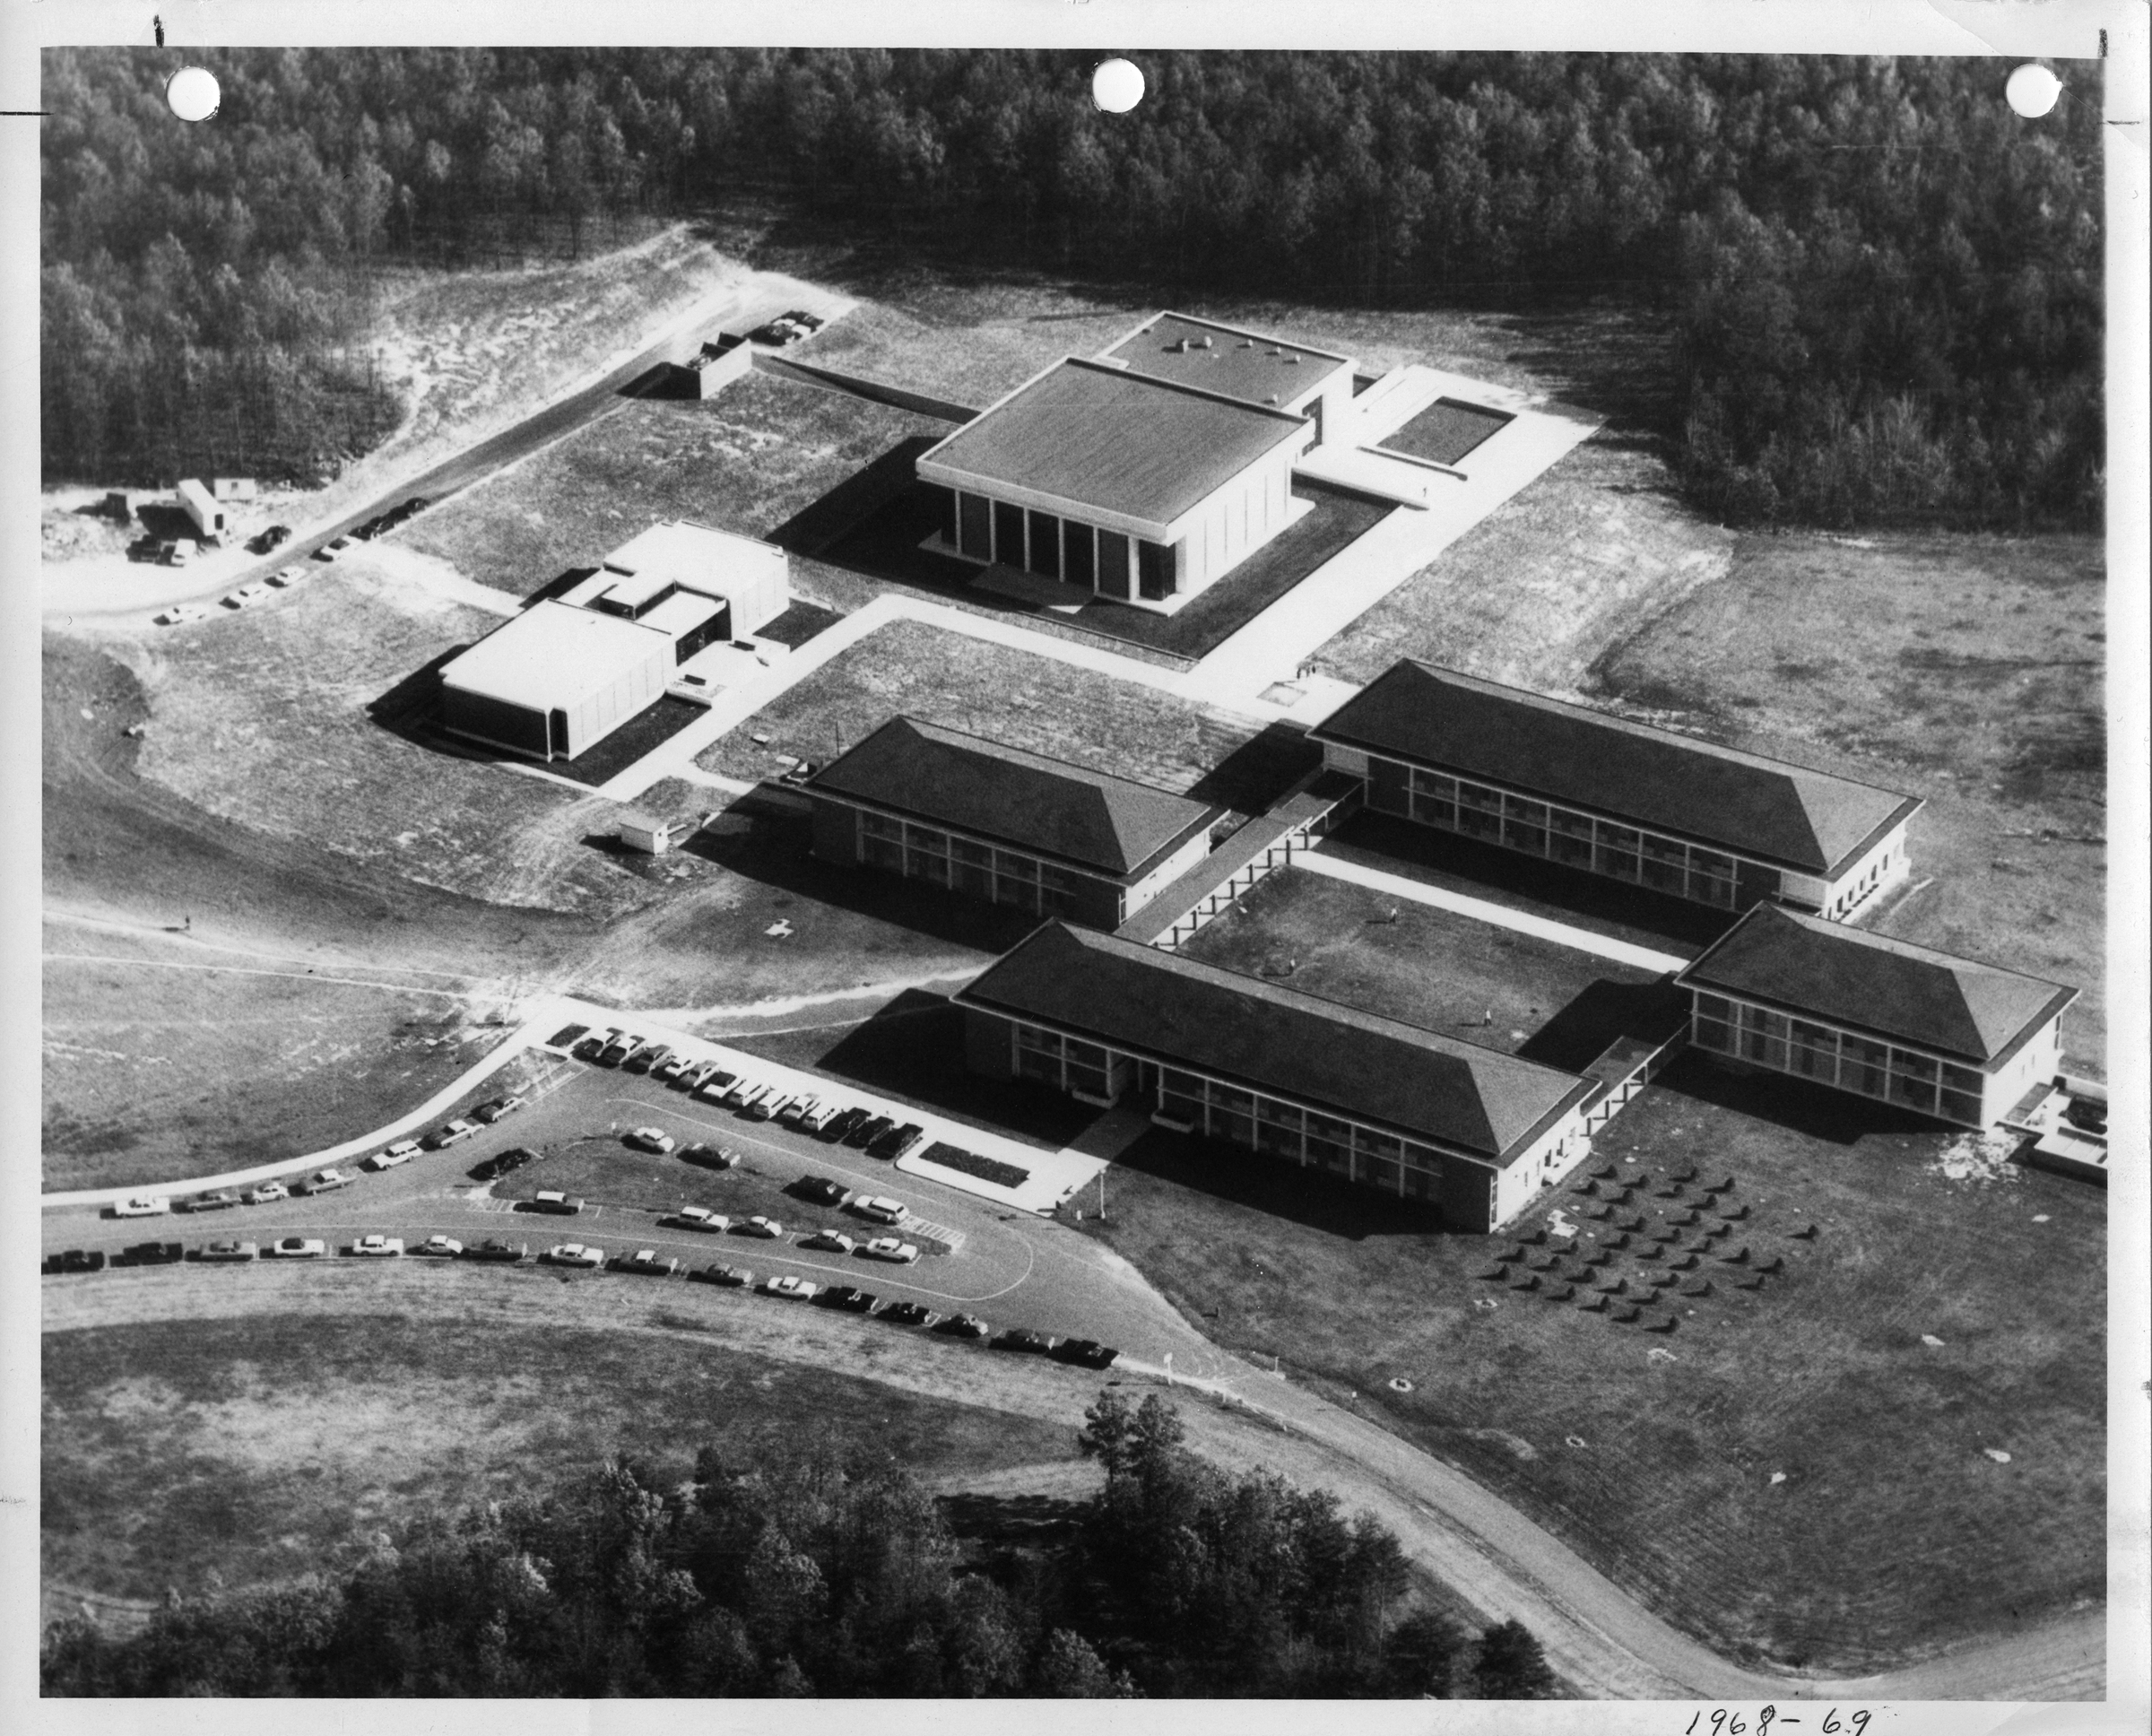 George Mason College, Fairfax campus, 1968, aerial photograph looking southeast